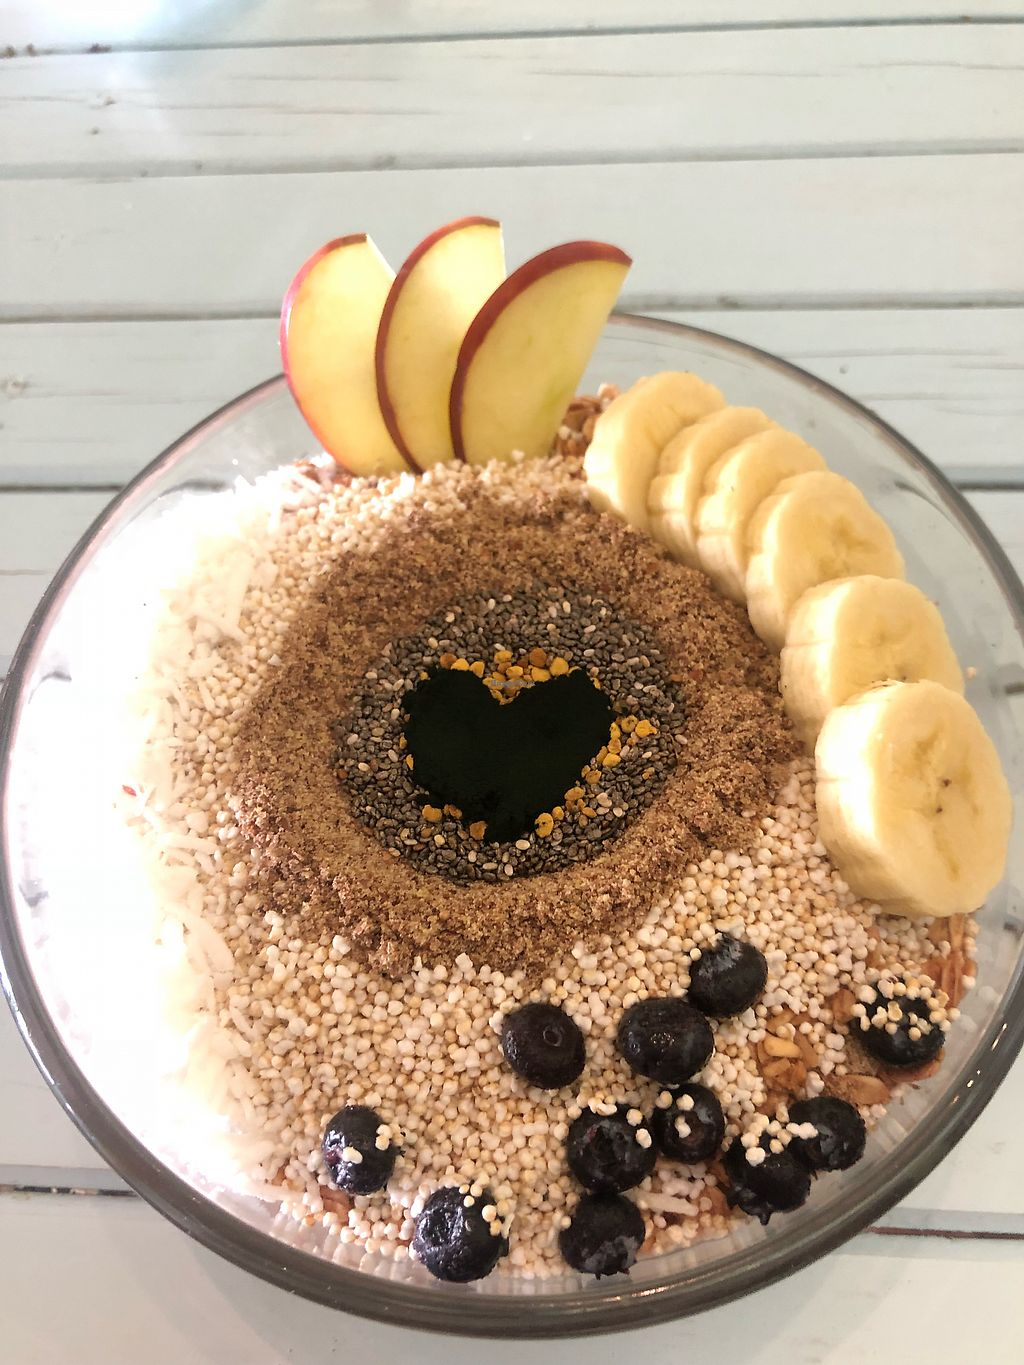 """Photo of Orangy Smoothies  by <a href=""""/members/profile/JennieD"""">JennieD</a> <br/>Lots of love put into the smoothie bowls here <br/> April 2, 2018  - <a href='/contact/abuse/image/31077/379960'>Report</a>"""